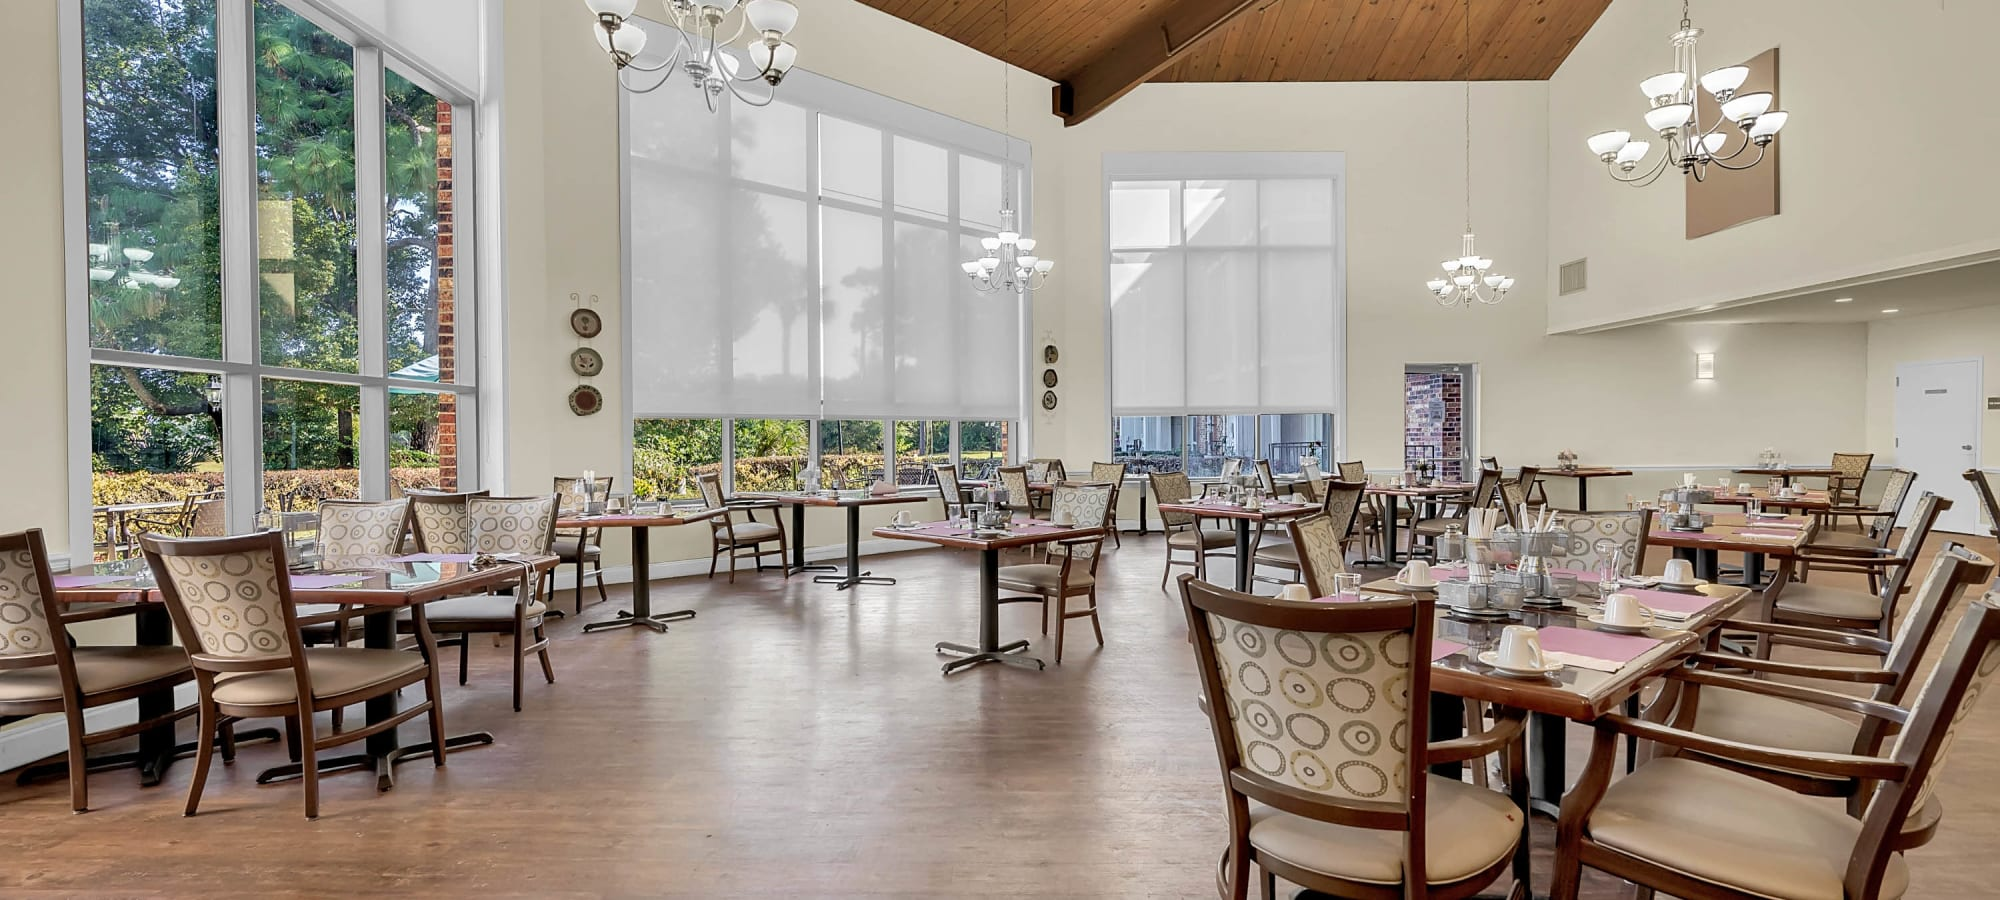 Renaissance Retirement Dining Room in Sanford, FL; high ceilings, wood floors, large windows